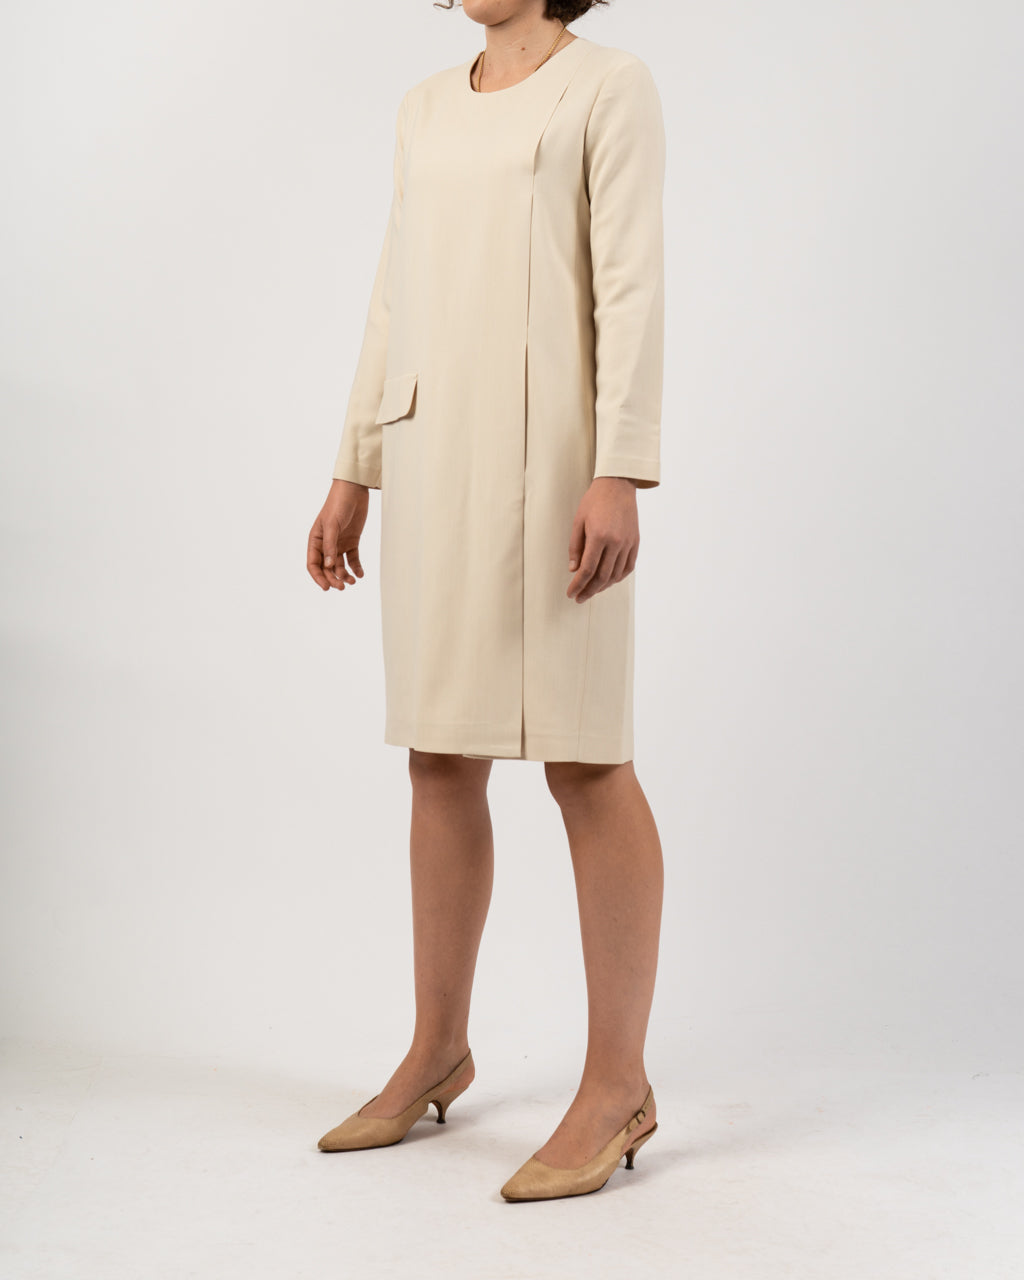 Mariotito Cream Dress